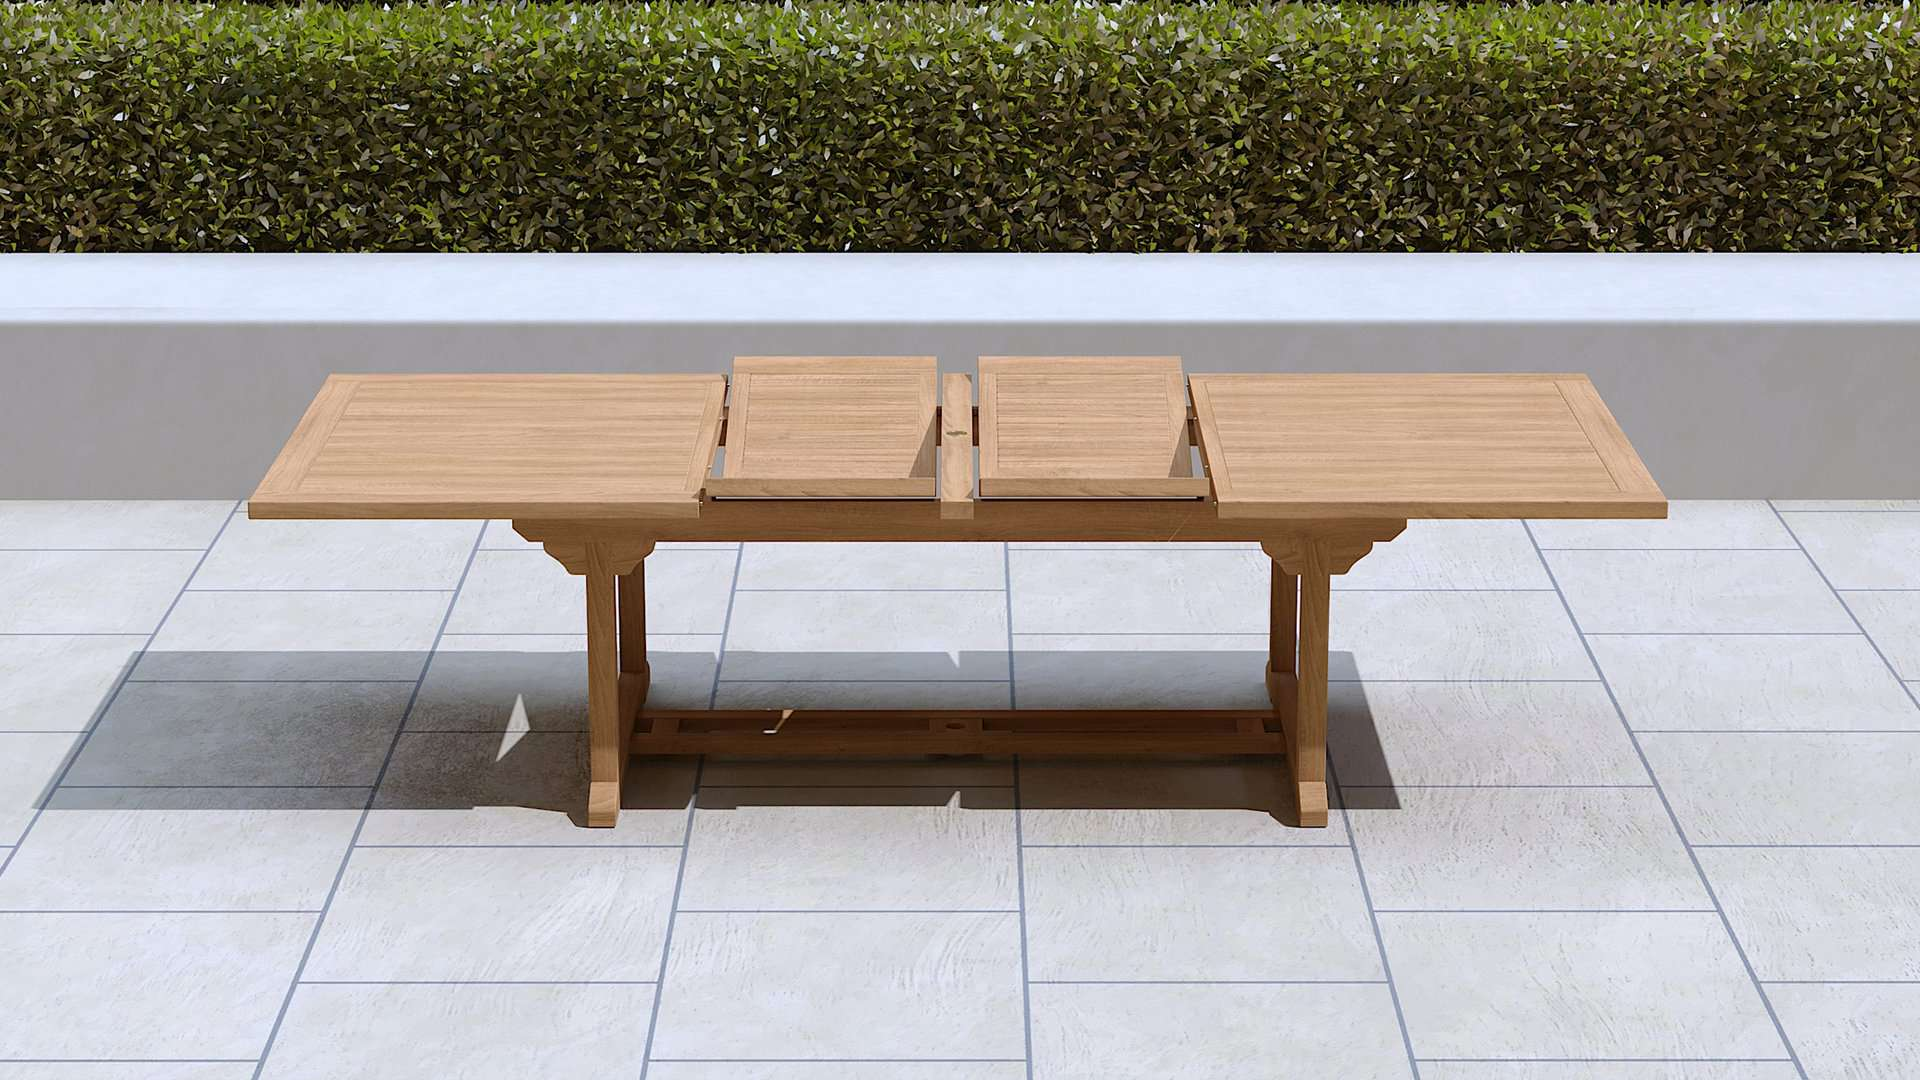 Garden Extending Dining Table 200-300cm (10-14 Seater)  - Chic Teak® | Luxury Teak Furniture